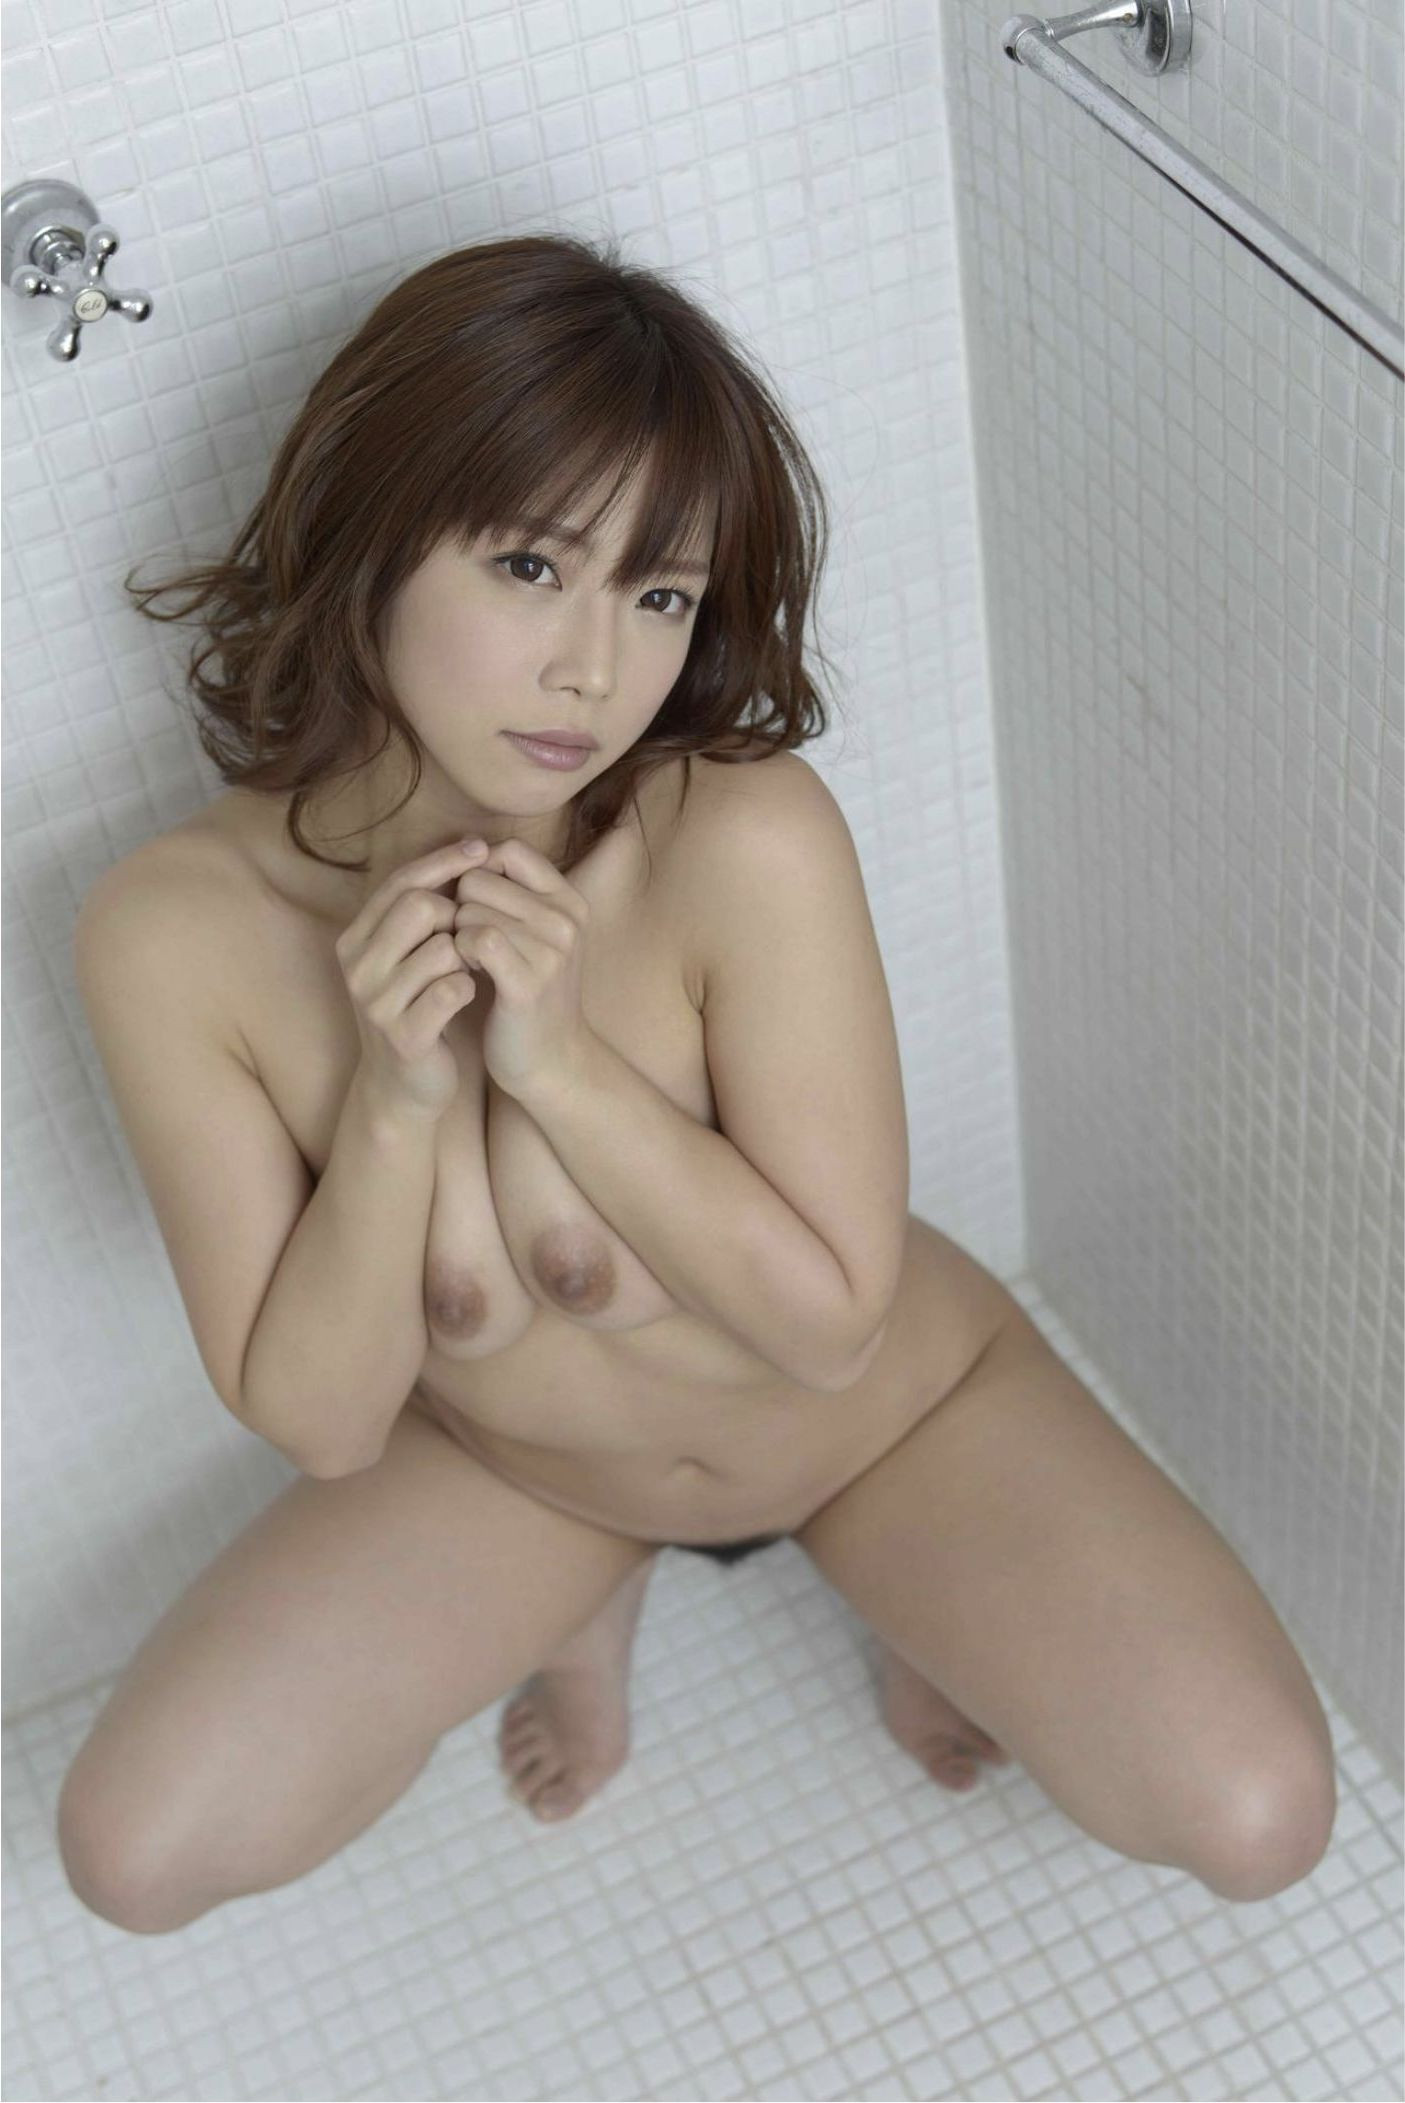 SOFT ON DEMAND GRAVURE COLLECTION 紗倉まな02 photo 134